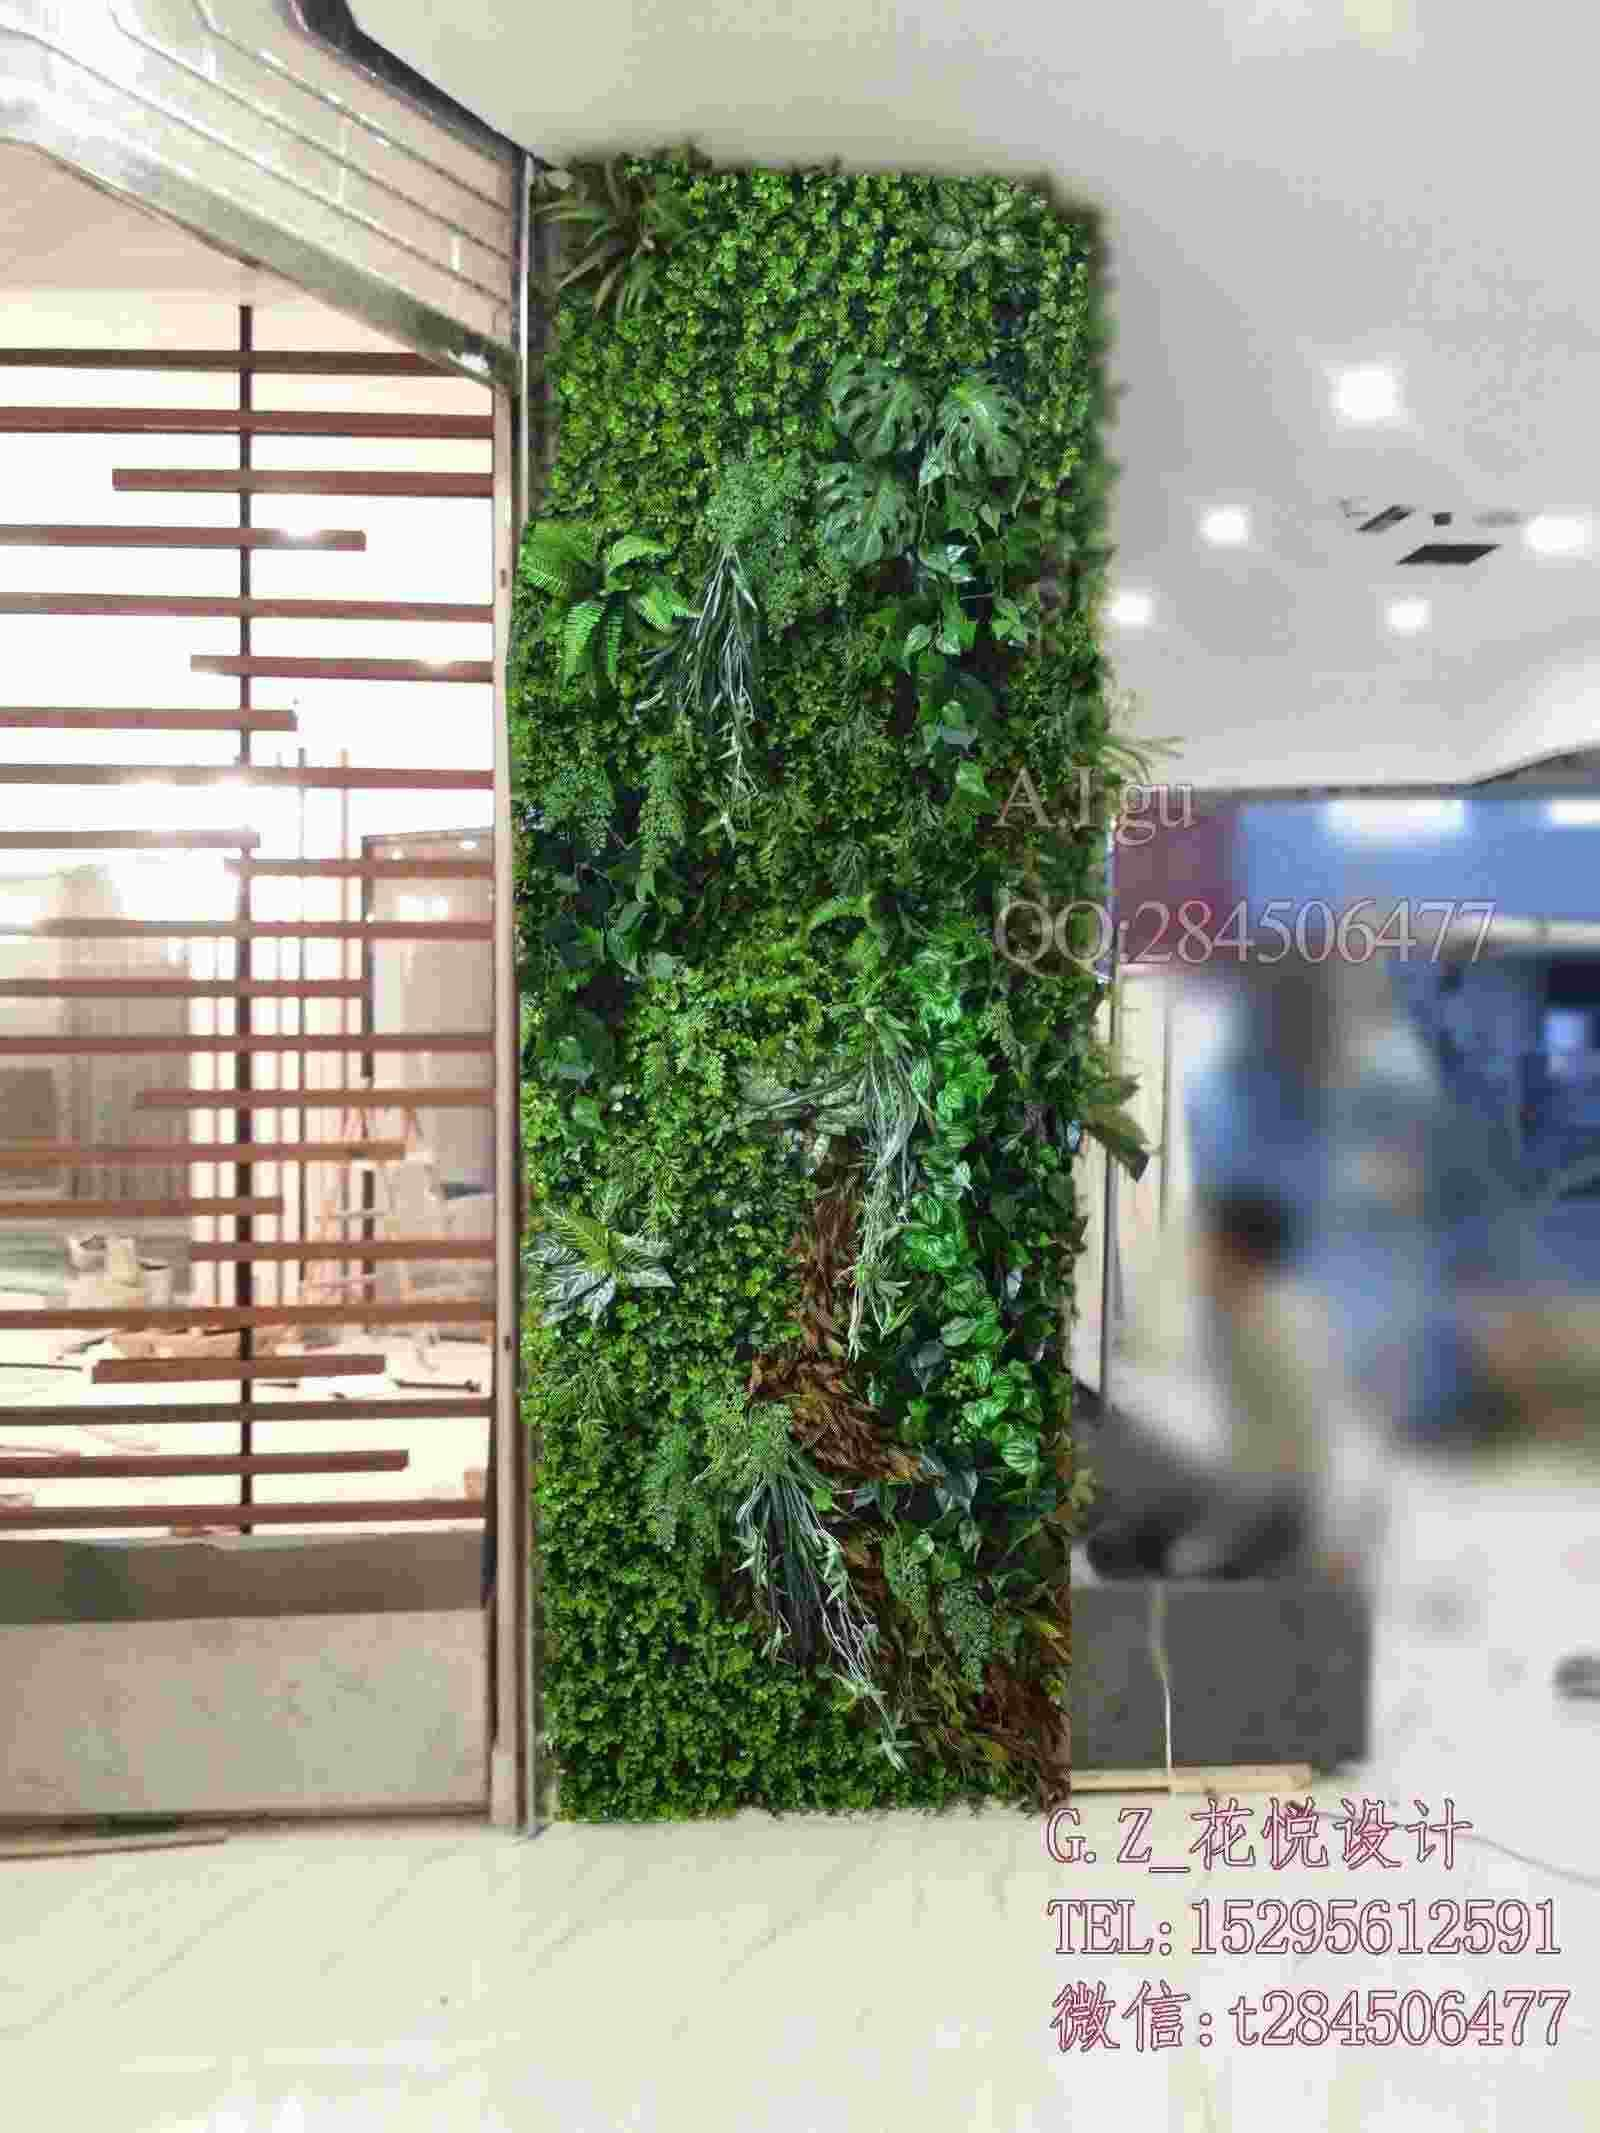 Outdoor ornamental plants - Suzhou Plant Simulation Wall Partition Wall Outdoor Ornamental Plants Flower Sales Offices Fake Green Backdrop Miniature